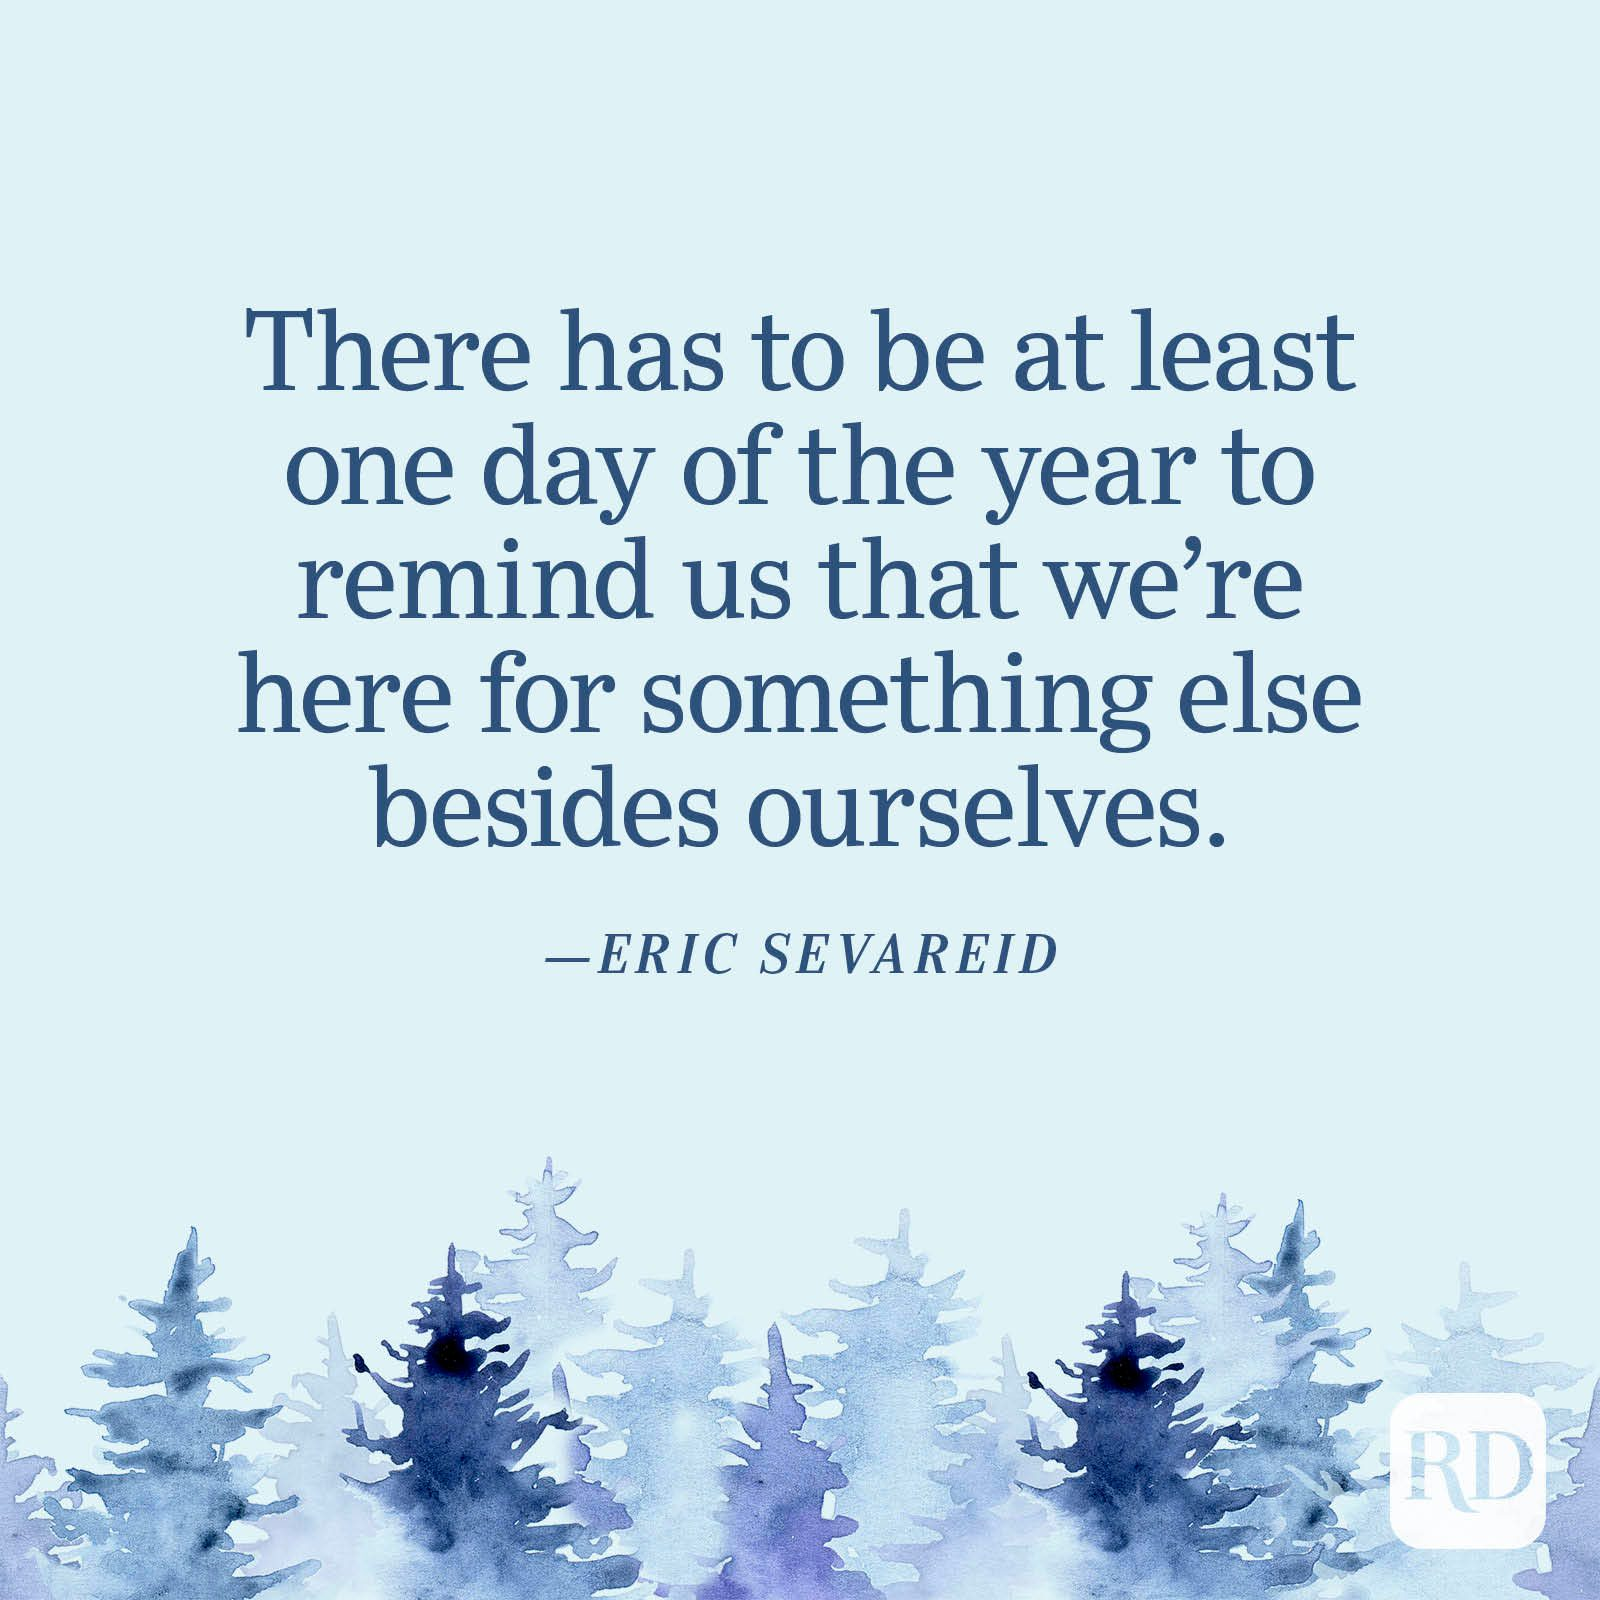 """""""There has to be at least one day of the year to remind us that we're here for something else besides ourselves."""" —Eric Sevareid"""